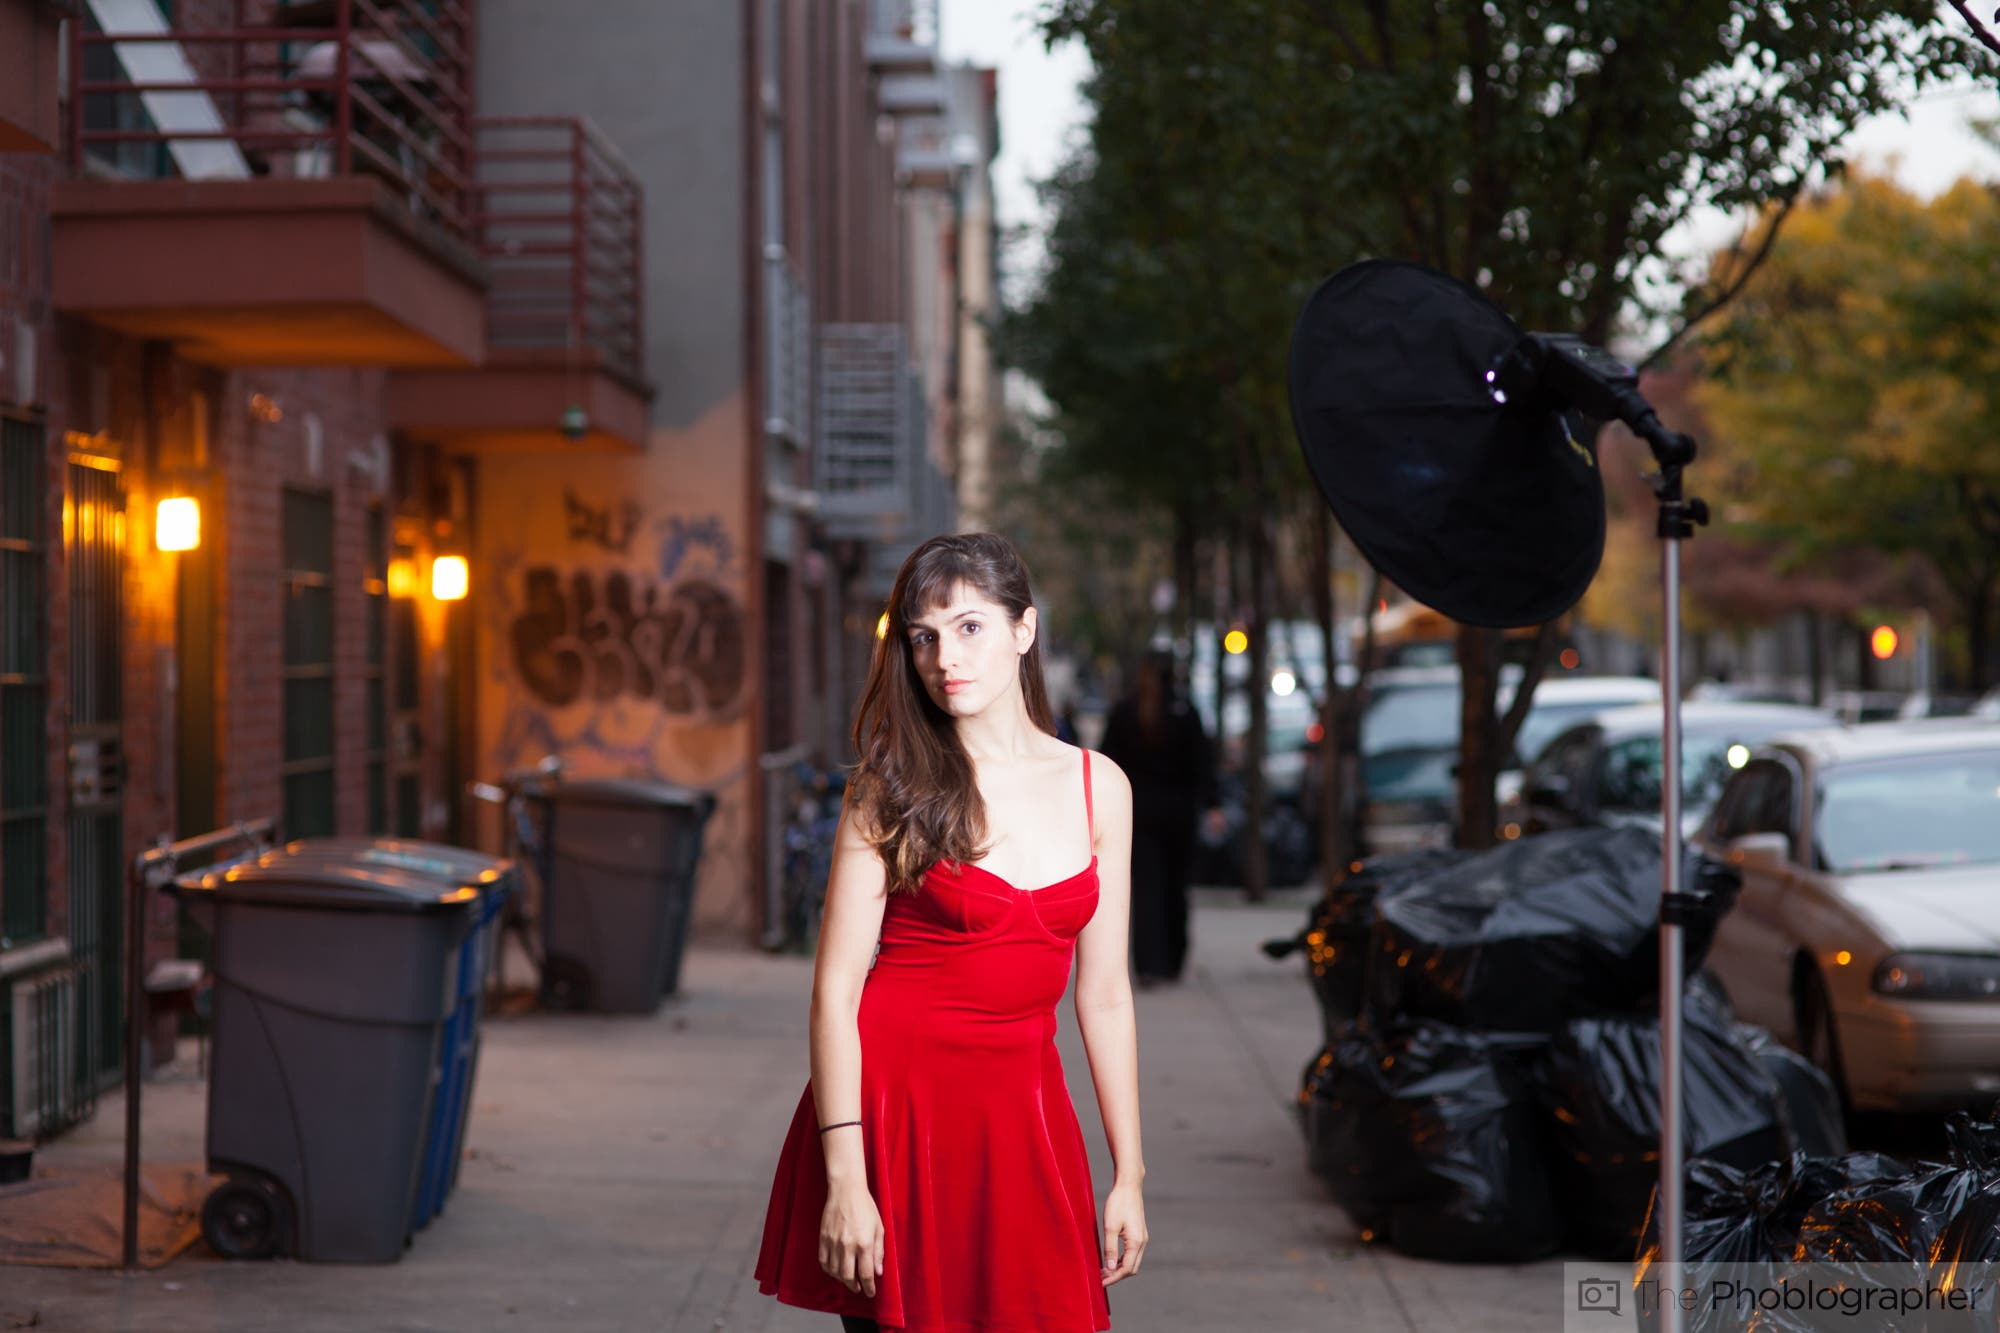 Useful Photography Tip #159: The Simple Secret to Using a Flash